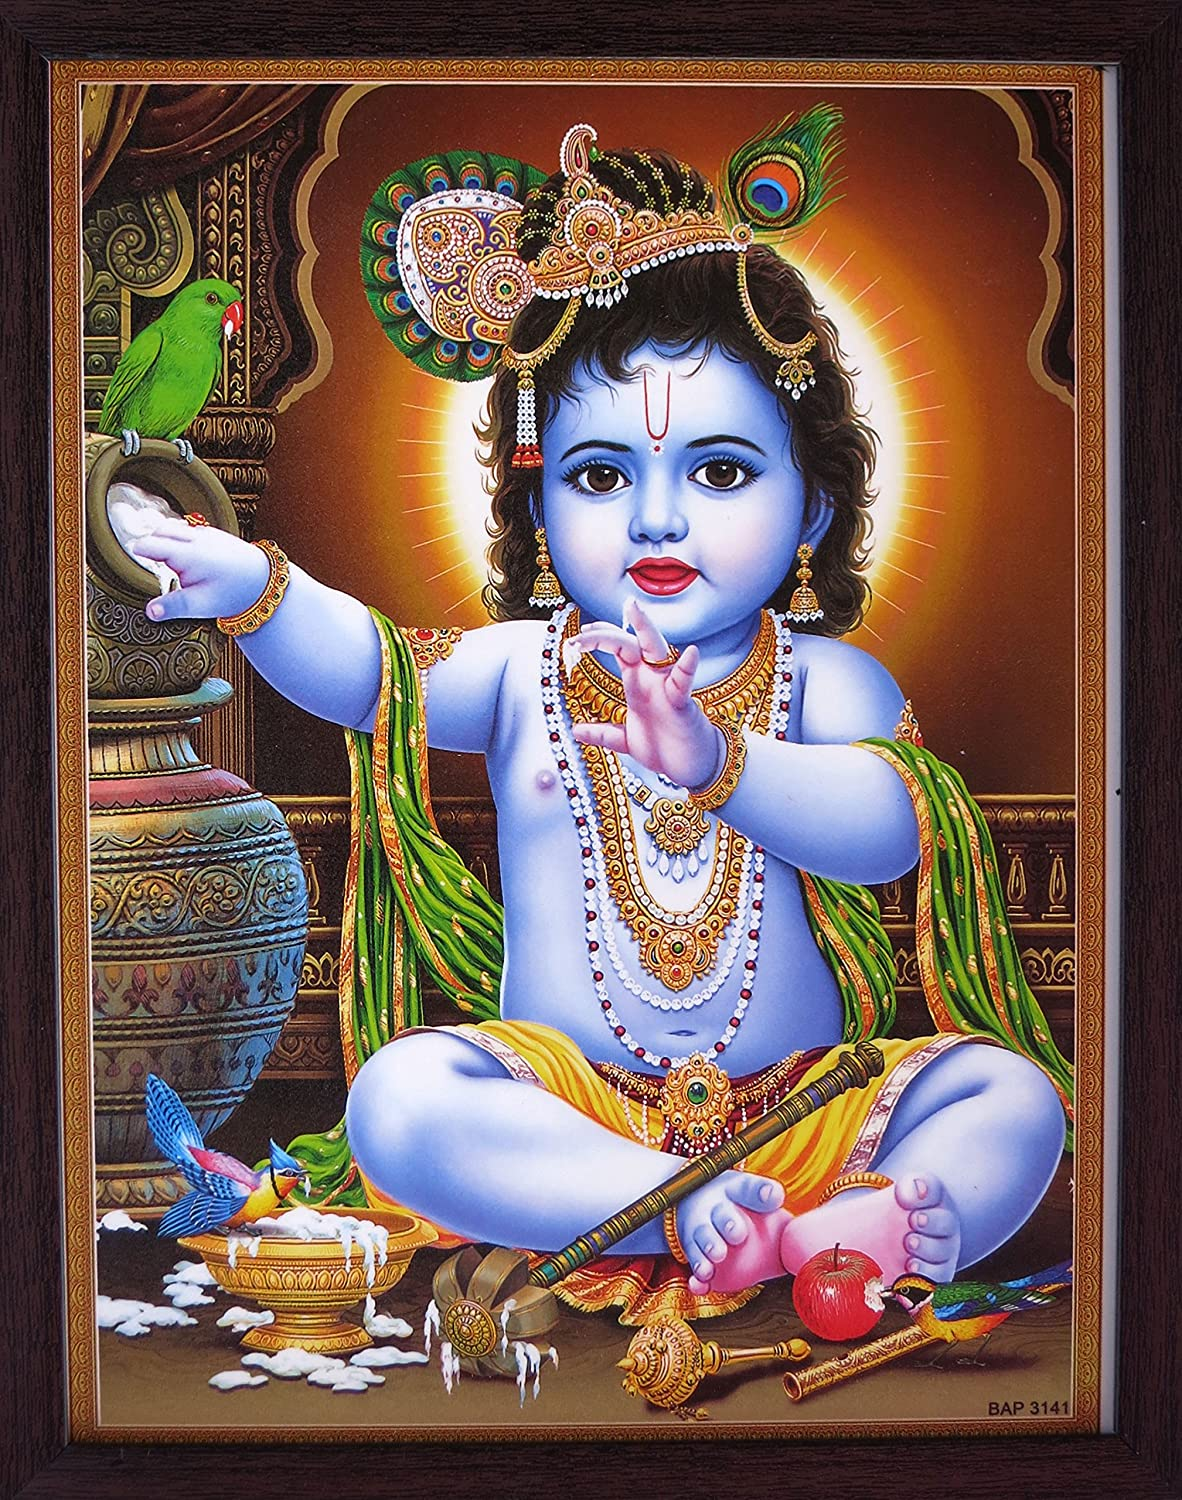 Handicraft Store Lord Child Bal Krishna Playing with Butter and Parrots are Enjoying, a Decorative Religious Poster with Beautiful Frame,